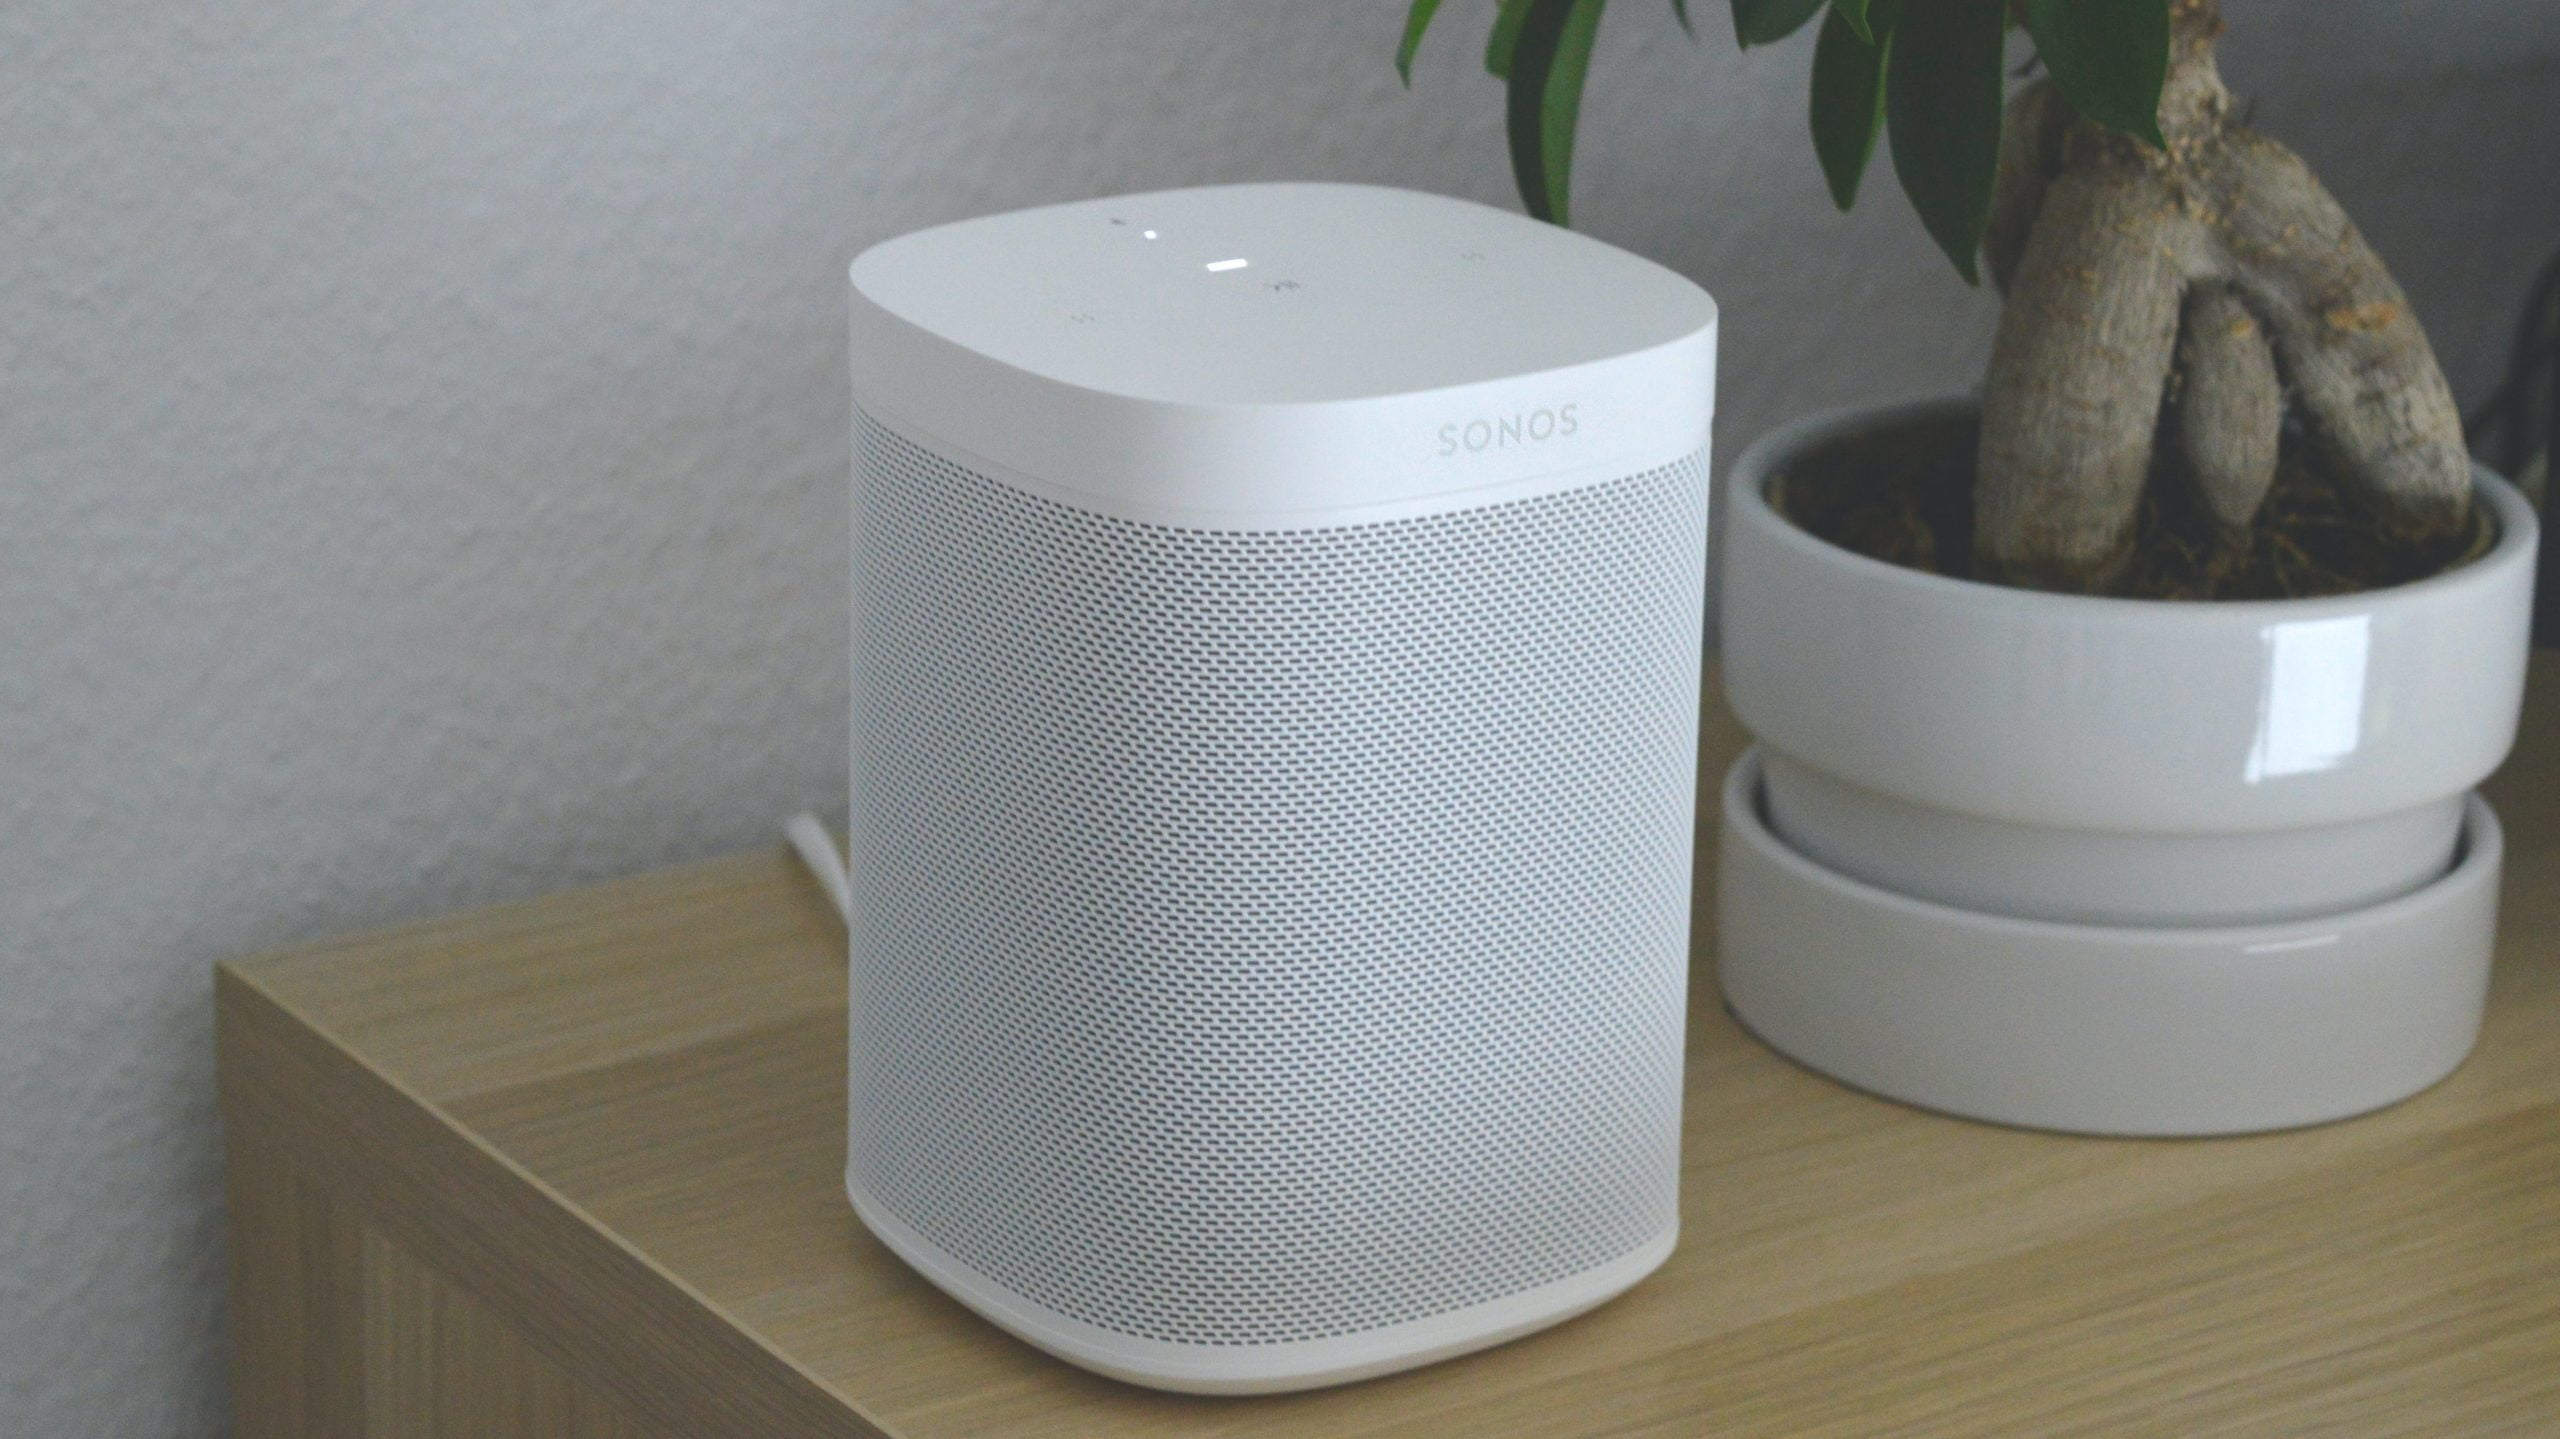 How to reset a Sonos speaker